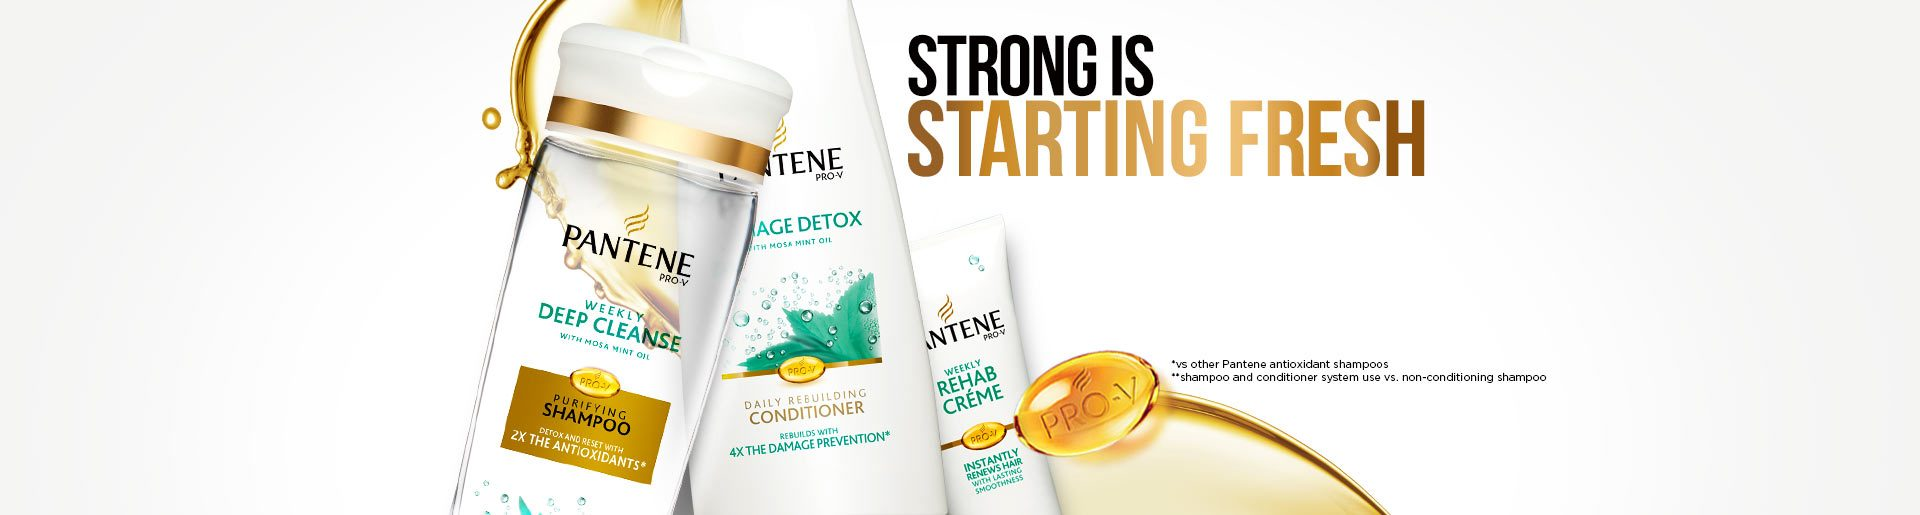 Strong is starting fresh *vs other Pantene antioxidant shampoos **shampoo and conditioner system use vs. non-conditioning shampoo